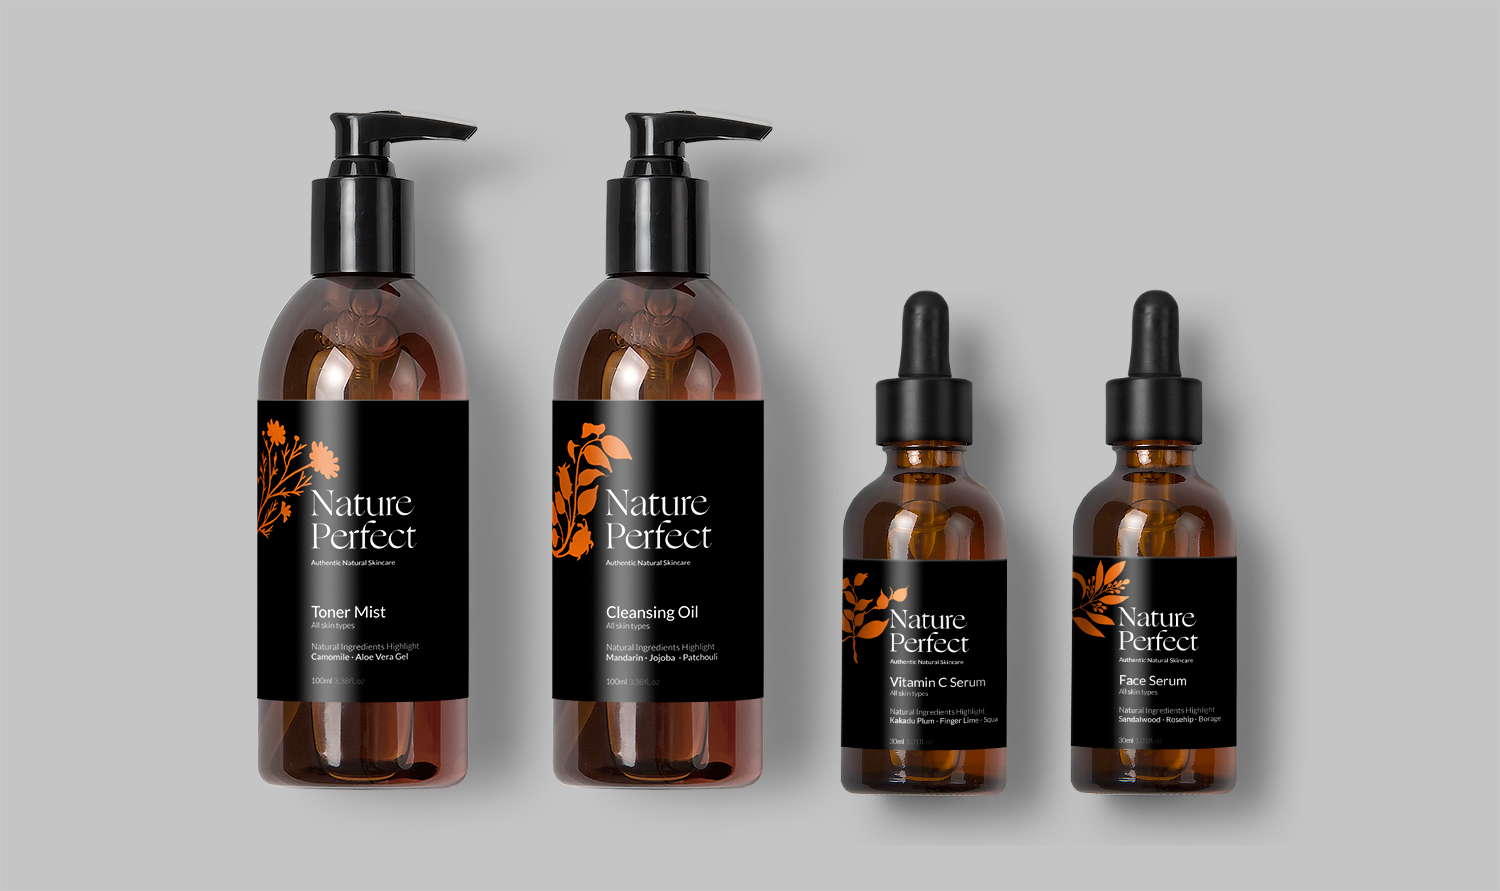 Graphic Design Example - Nature Perfect Skincare logo design and packaging design